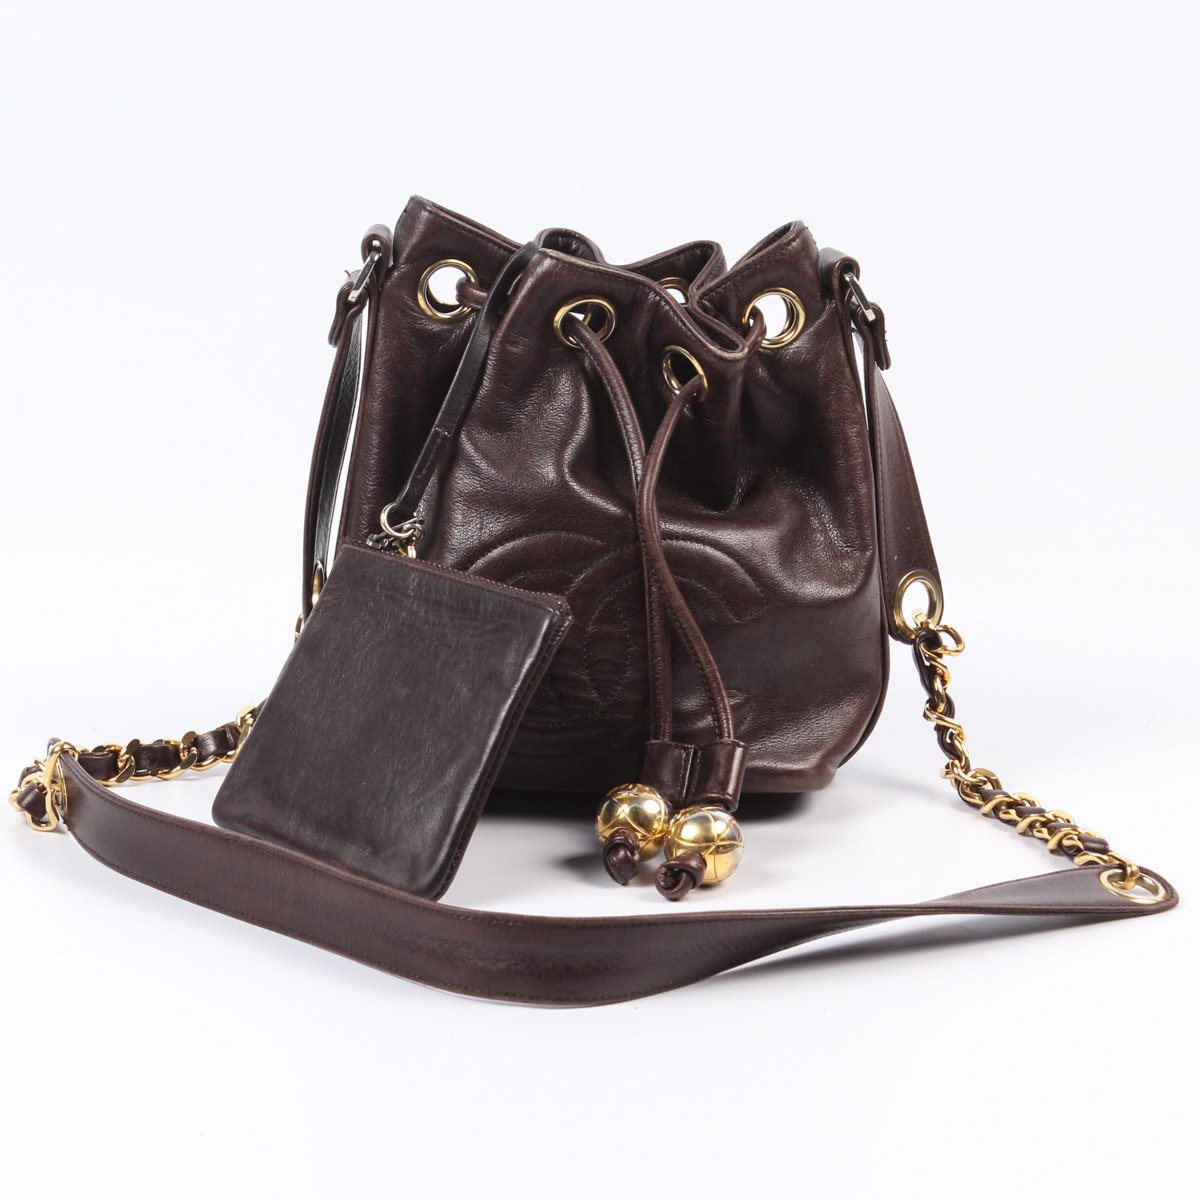 Chanel Logo Brown Leather Drawstring Bucket Bag